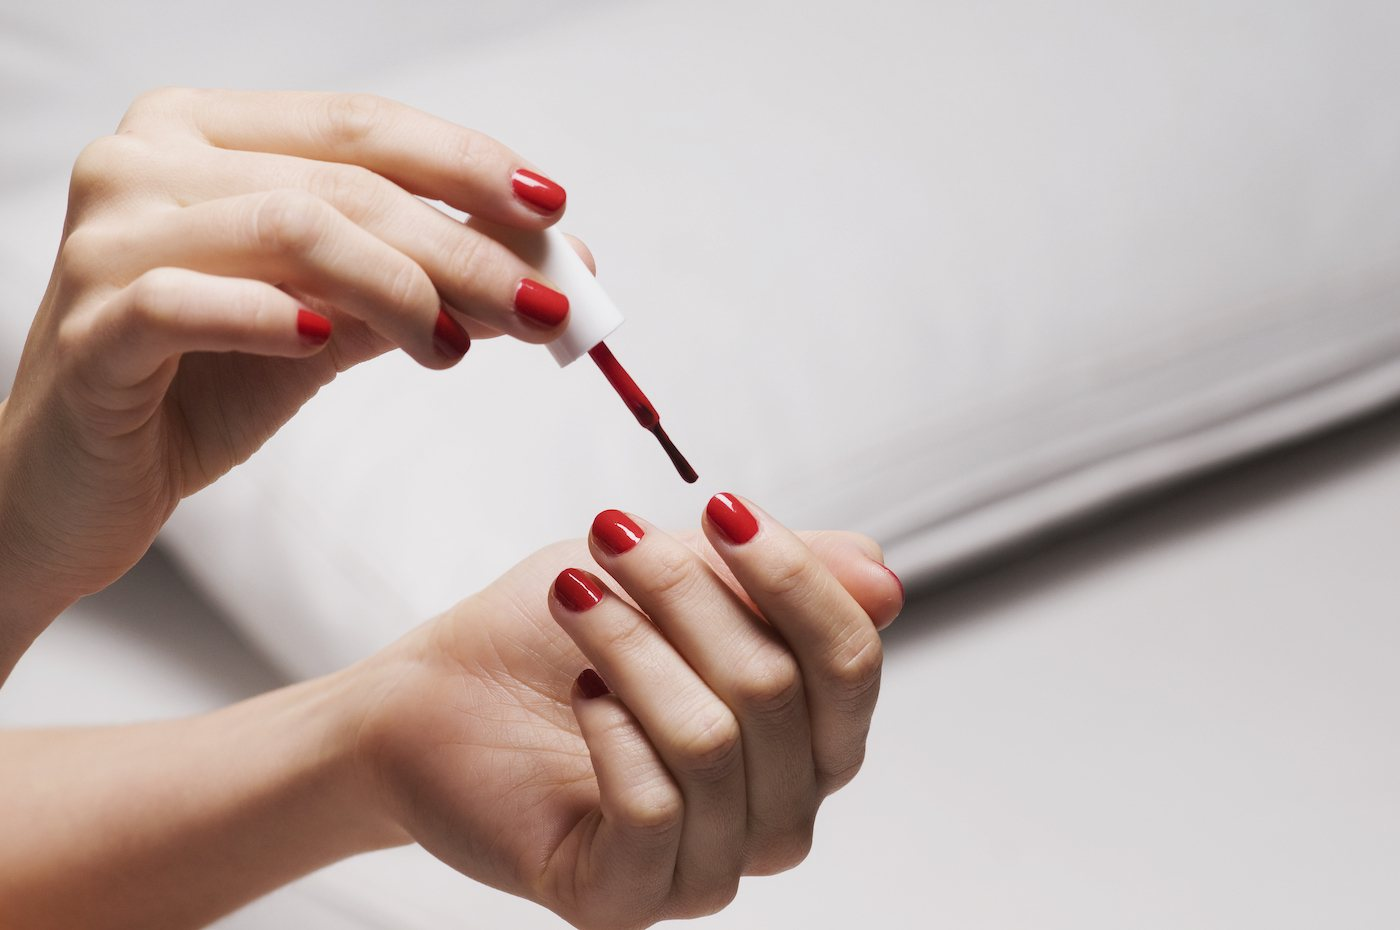 Thumbnail for If You Ask a Manicurist One Thing Before Getting Your Nails Done, Make It This